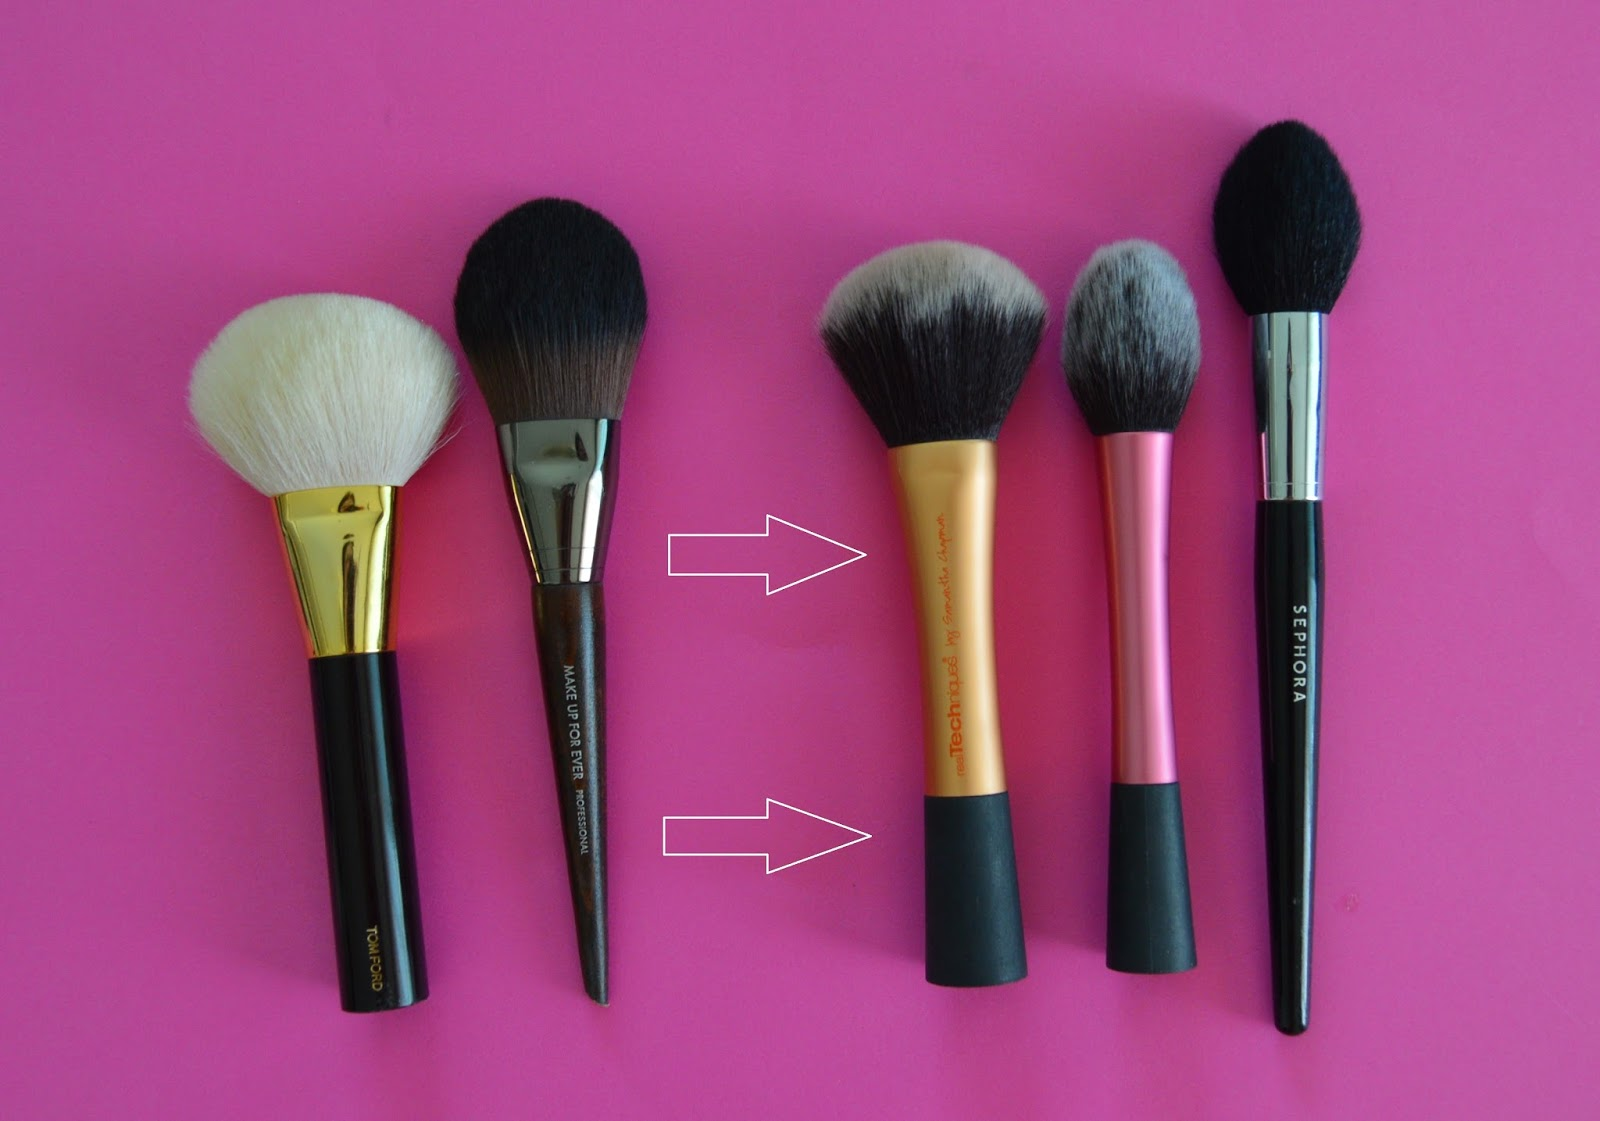 bobbi brown blush brush dupe. great dupes for my bronzer and powder brush are real techniques big brush, blush sephora #59, they all to use both. bobbi brown dupe